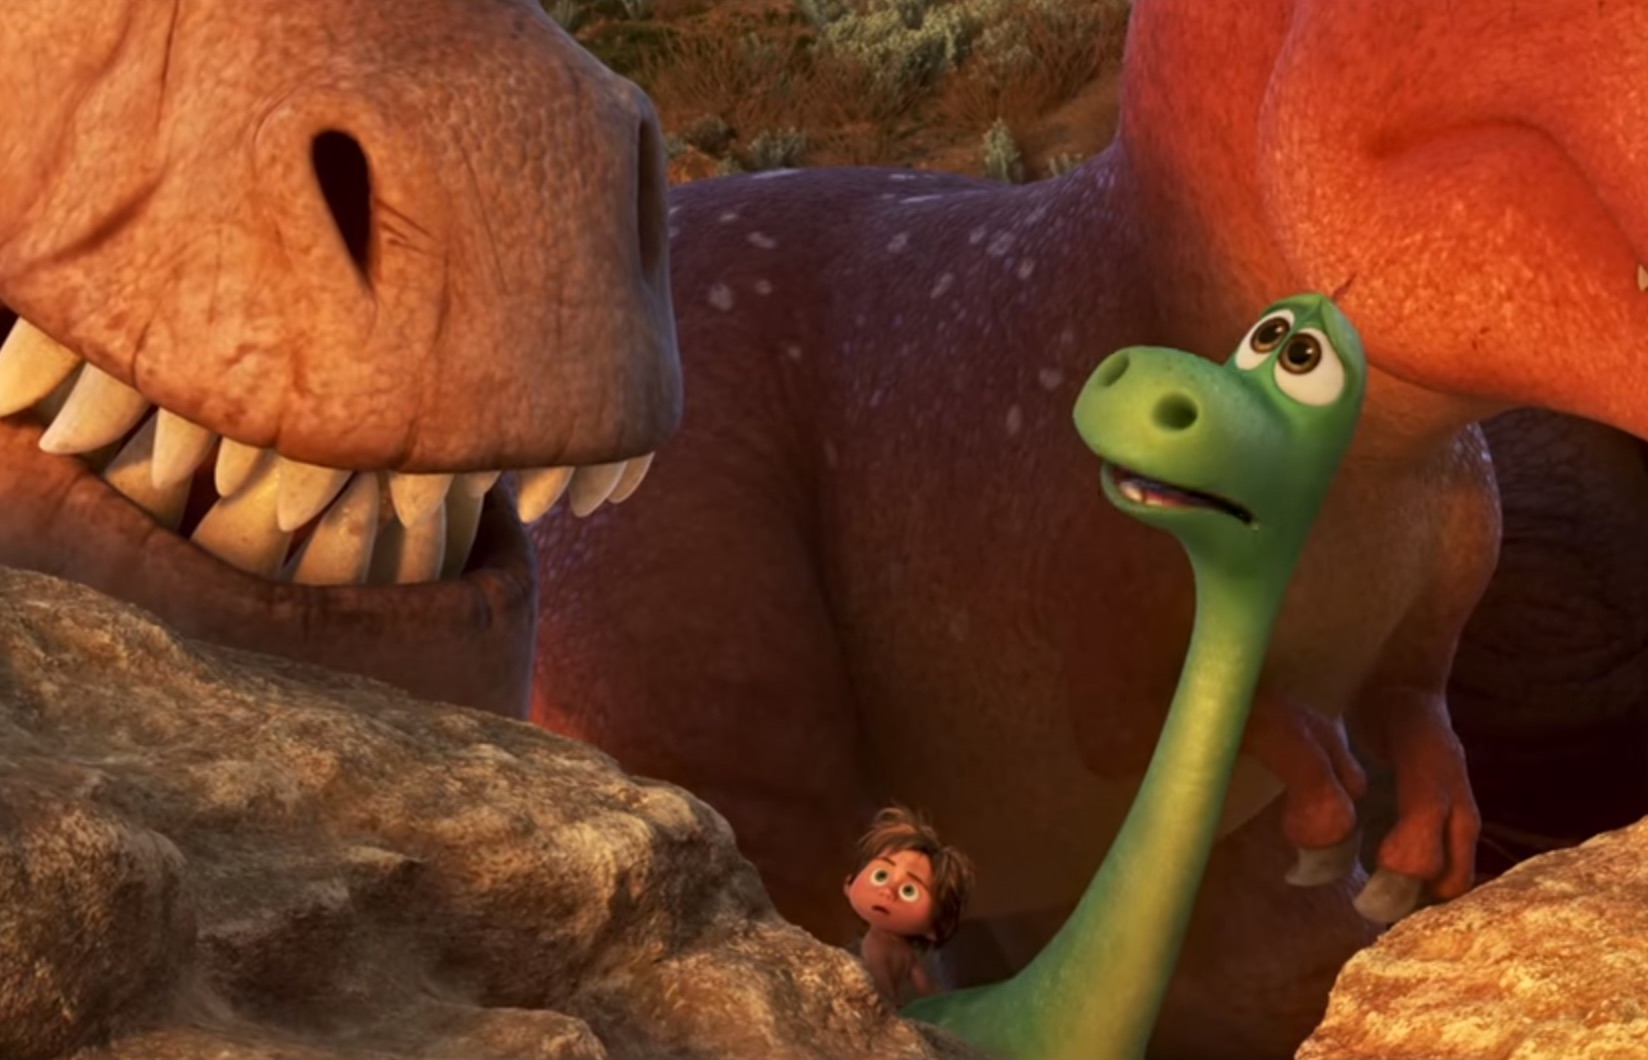 Pixar has been hinting at 'The Good Dinosaur' for years — here are all the clues we missed